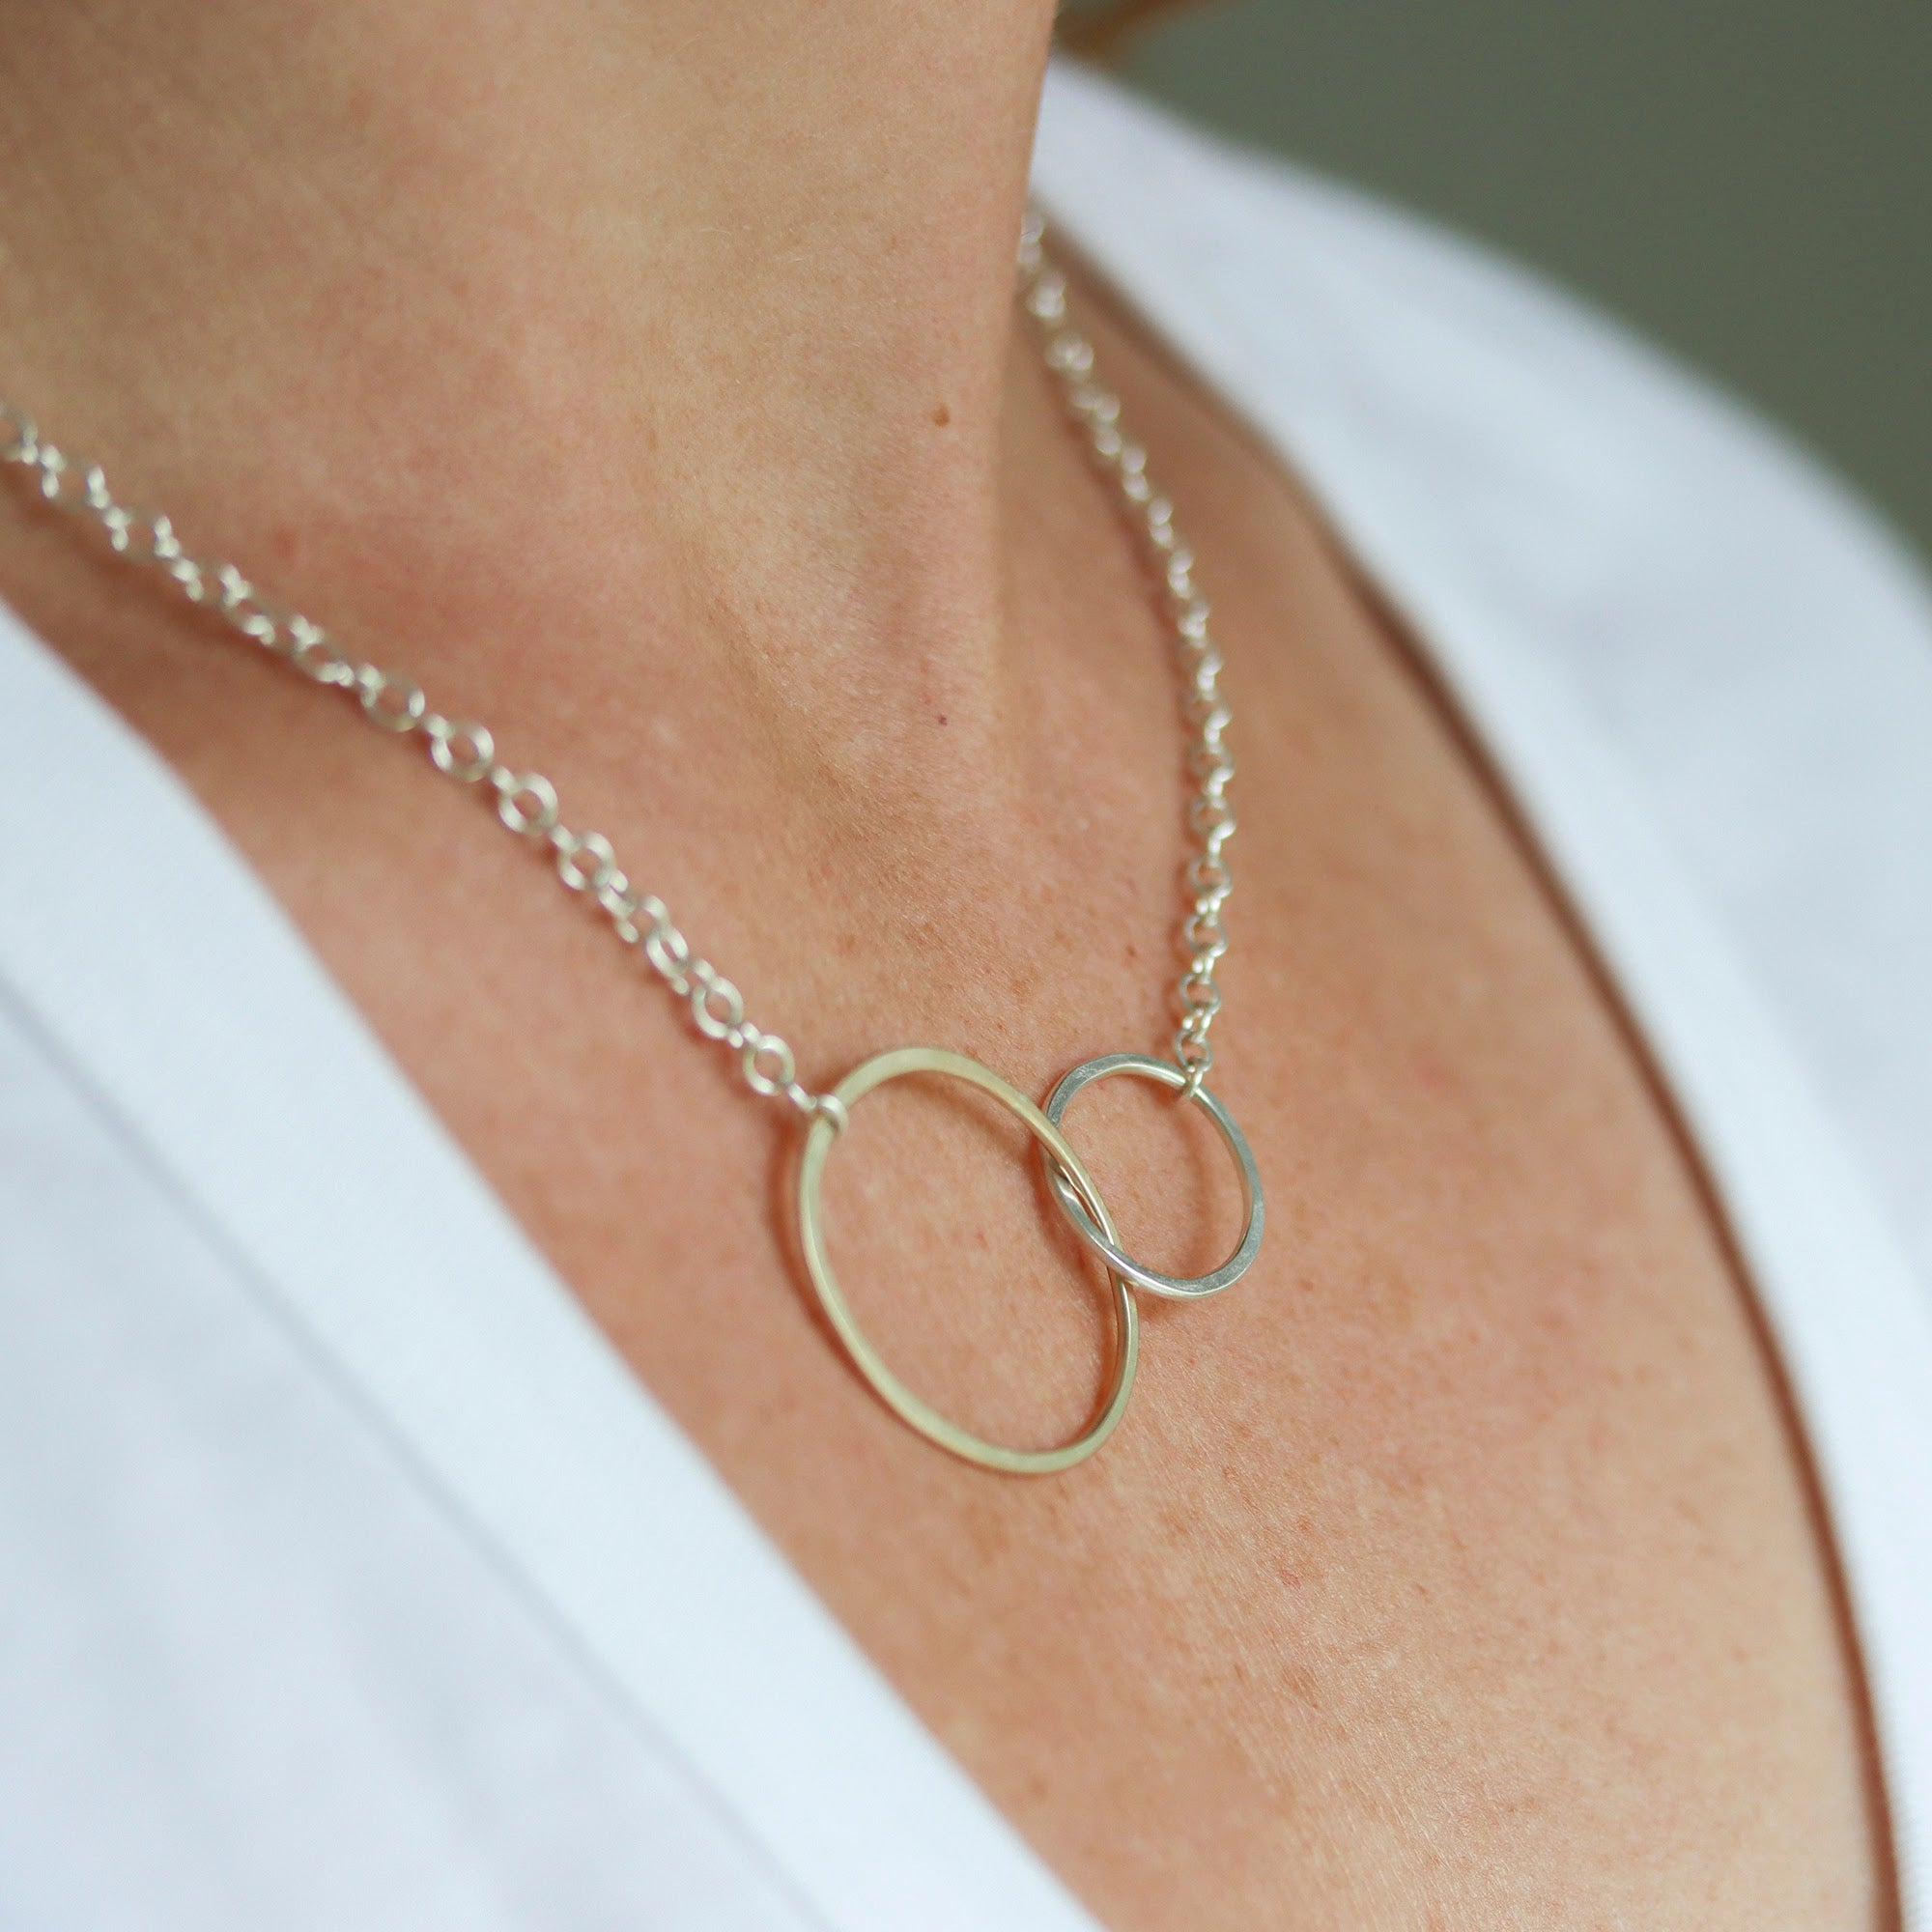 Rebecca Haas Jewelry - Necklace